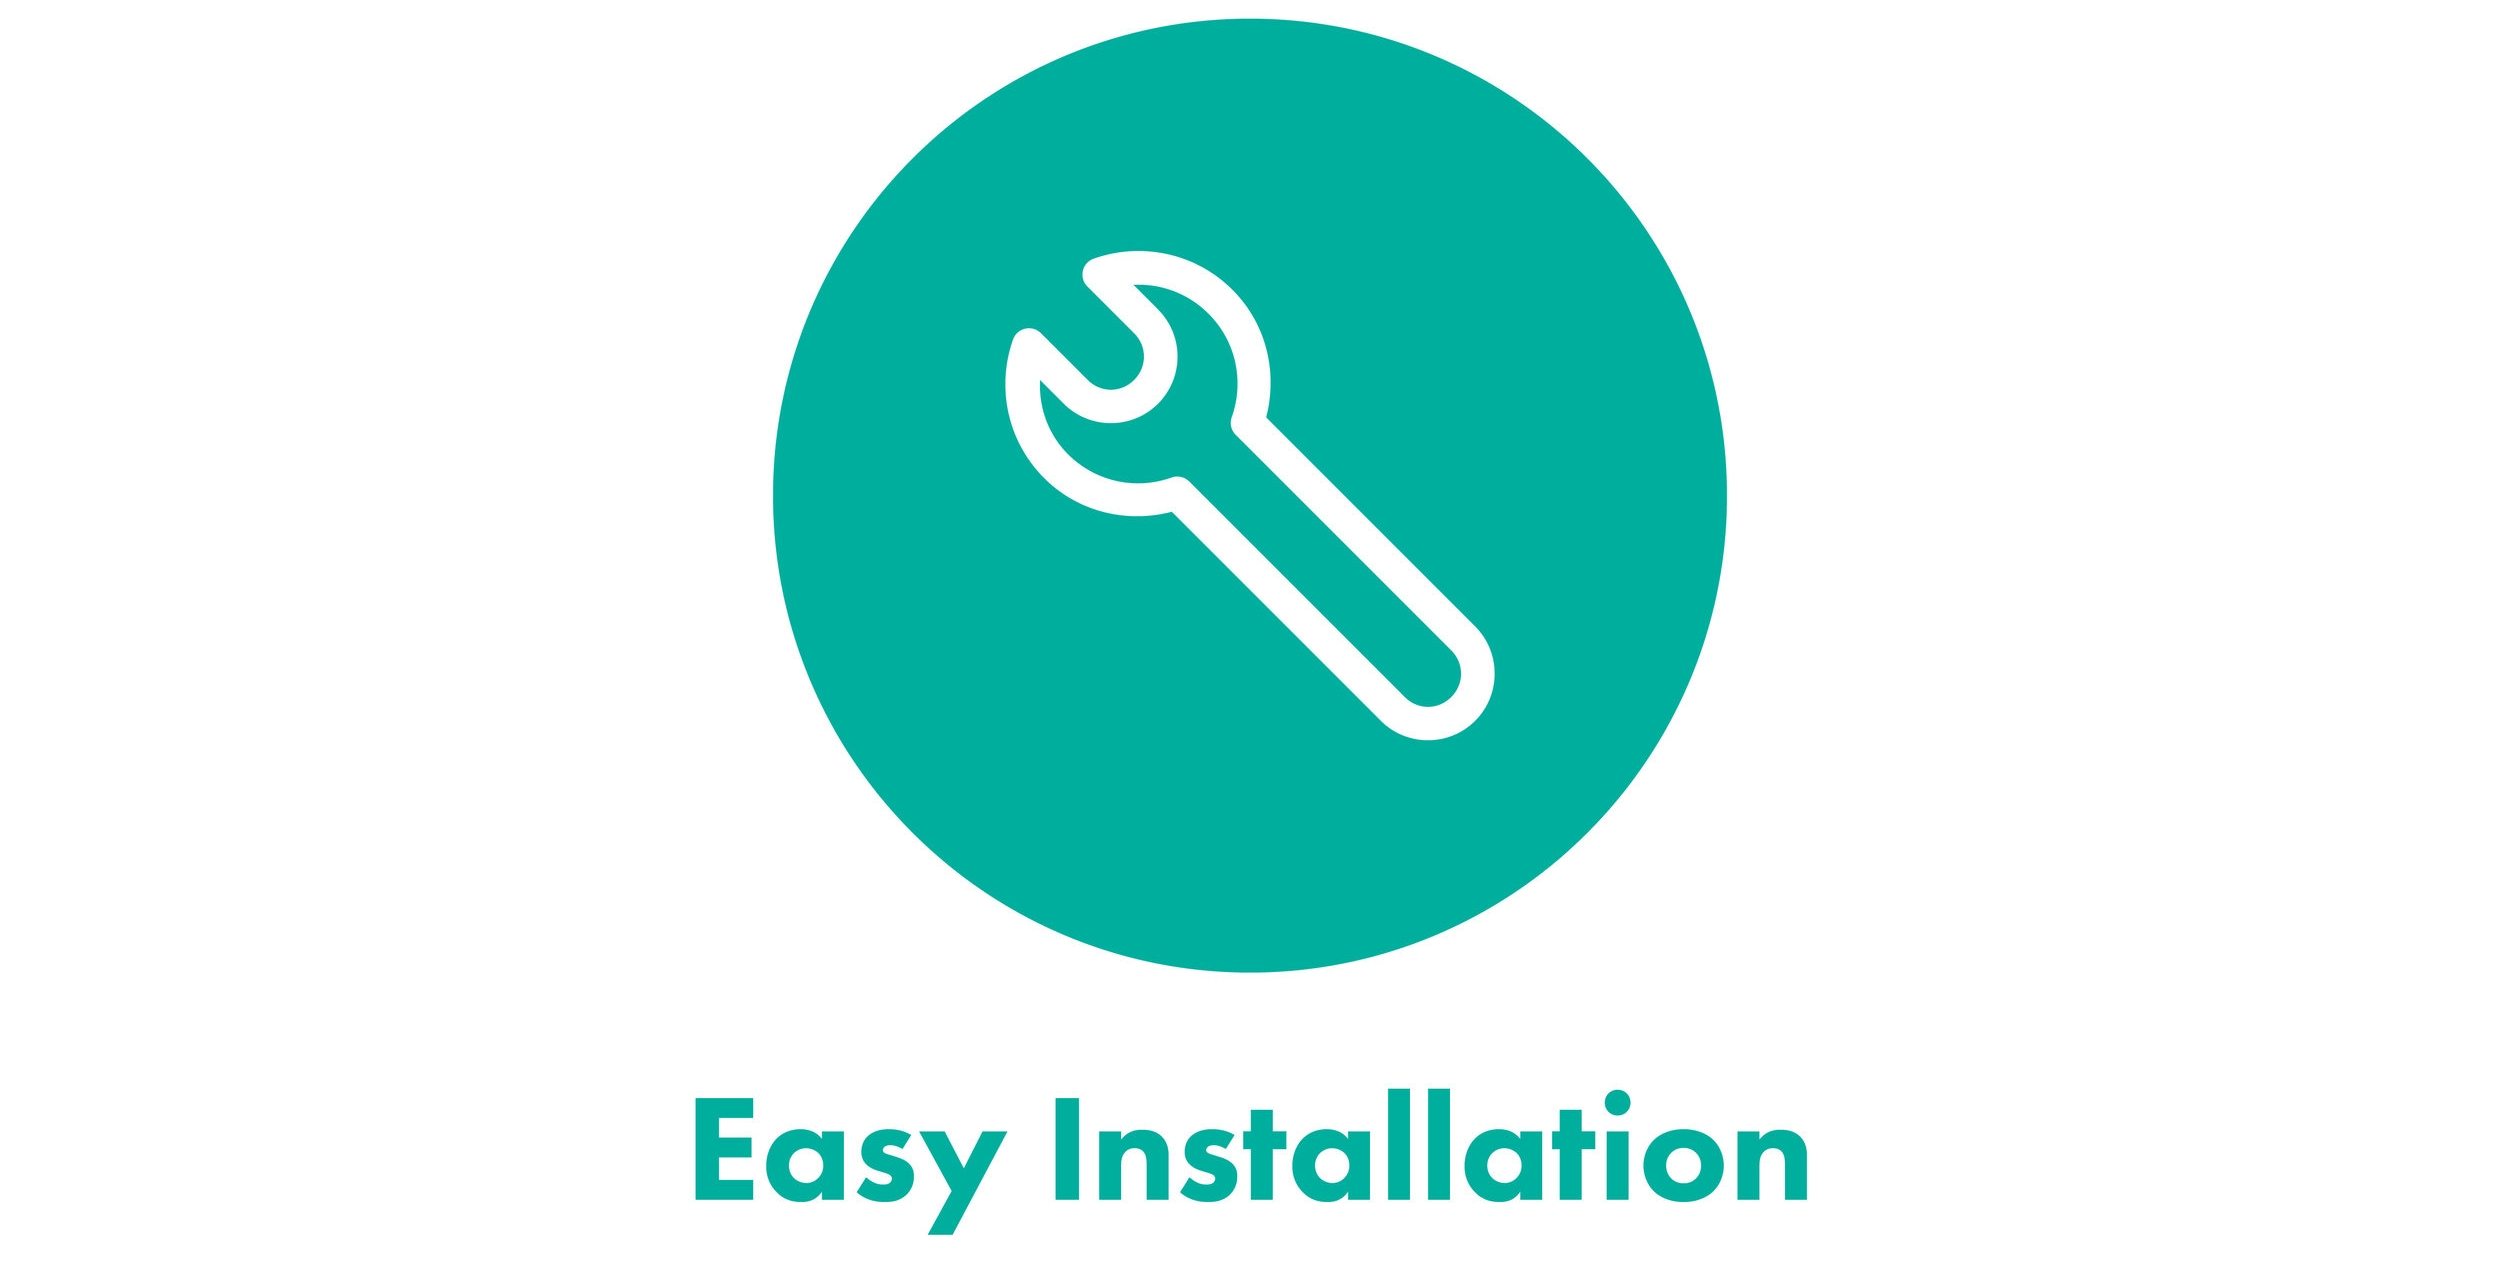 Easy Installation-01.jpg